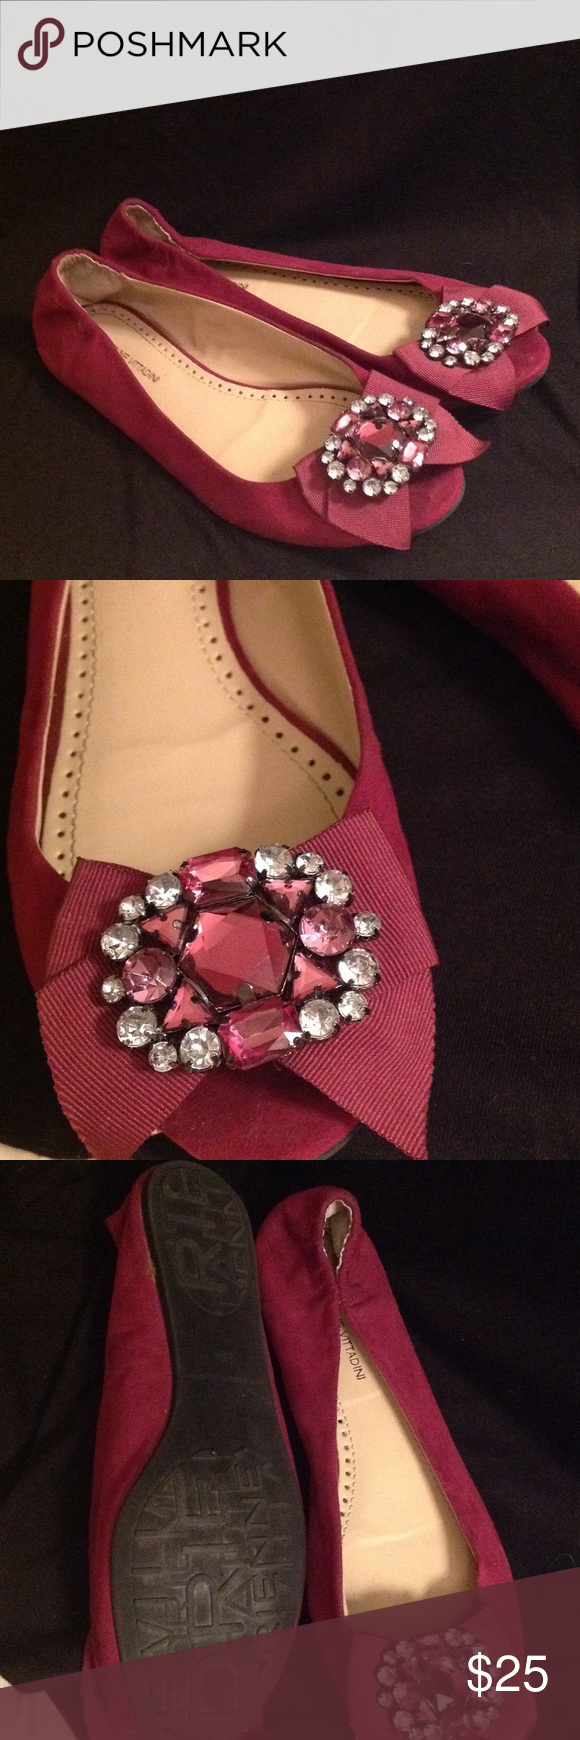 Beautiful Jeweled Open Toe Flats Perfect condition flats. Very comfortable. Open toed. Worn very gently. Beautiful jeweled toe. Make a reasonable offer! Adrienne Vittadini Shoes Flats & Loafers